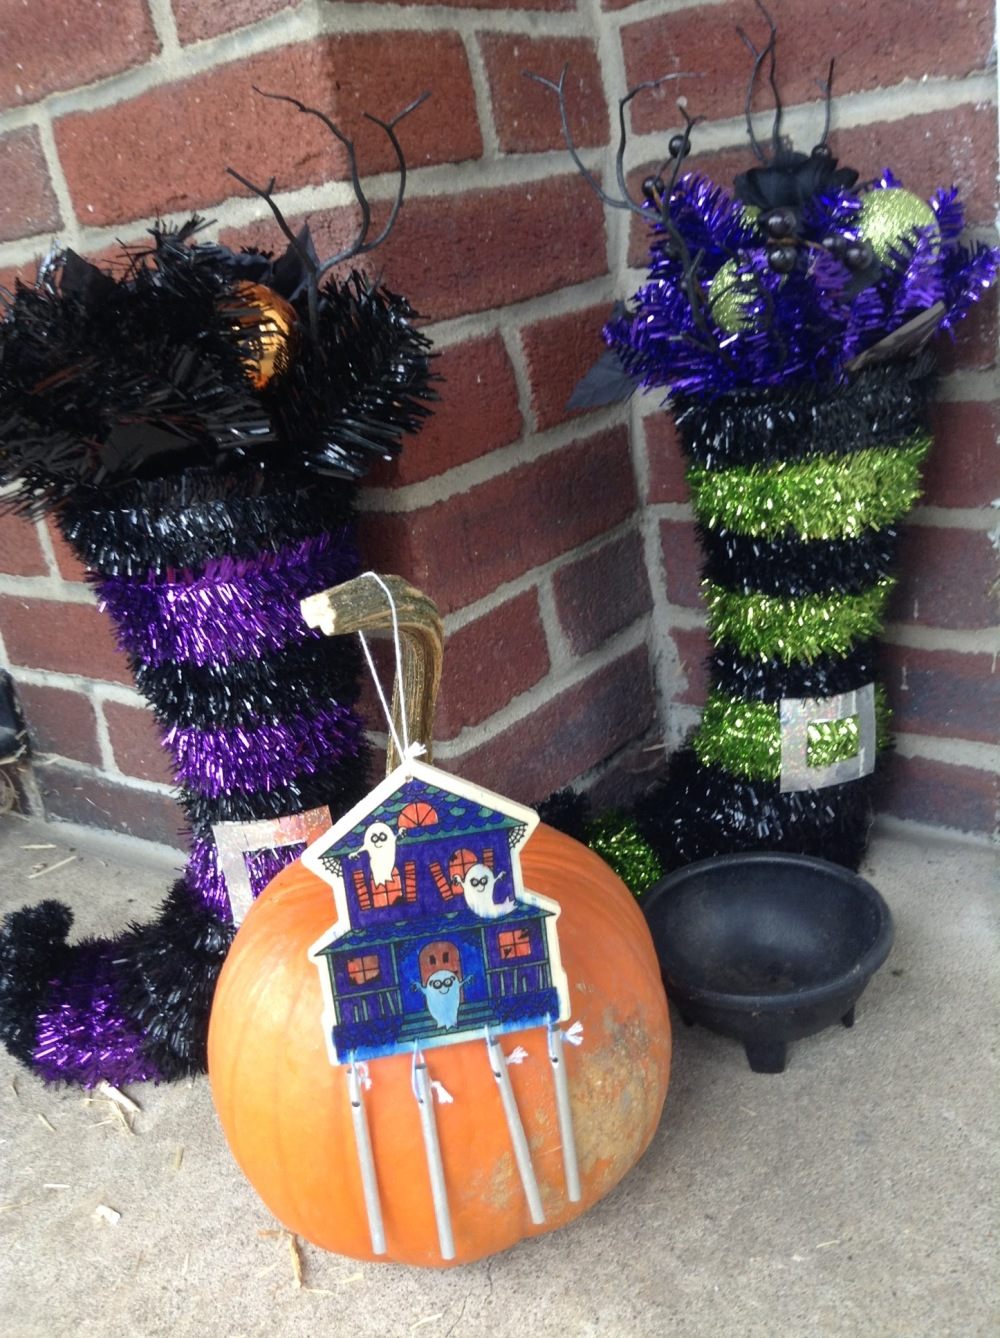 Sparkly witches boots, and a pumpkin with a windchime.